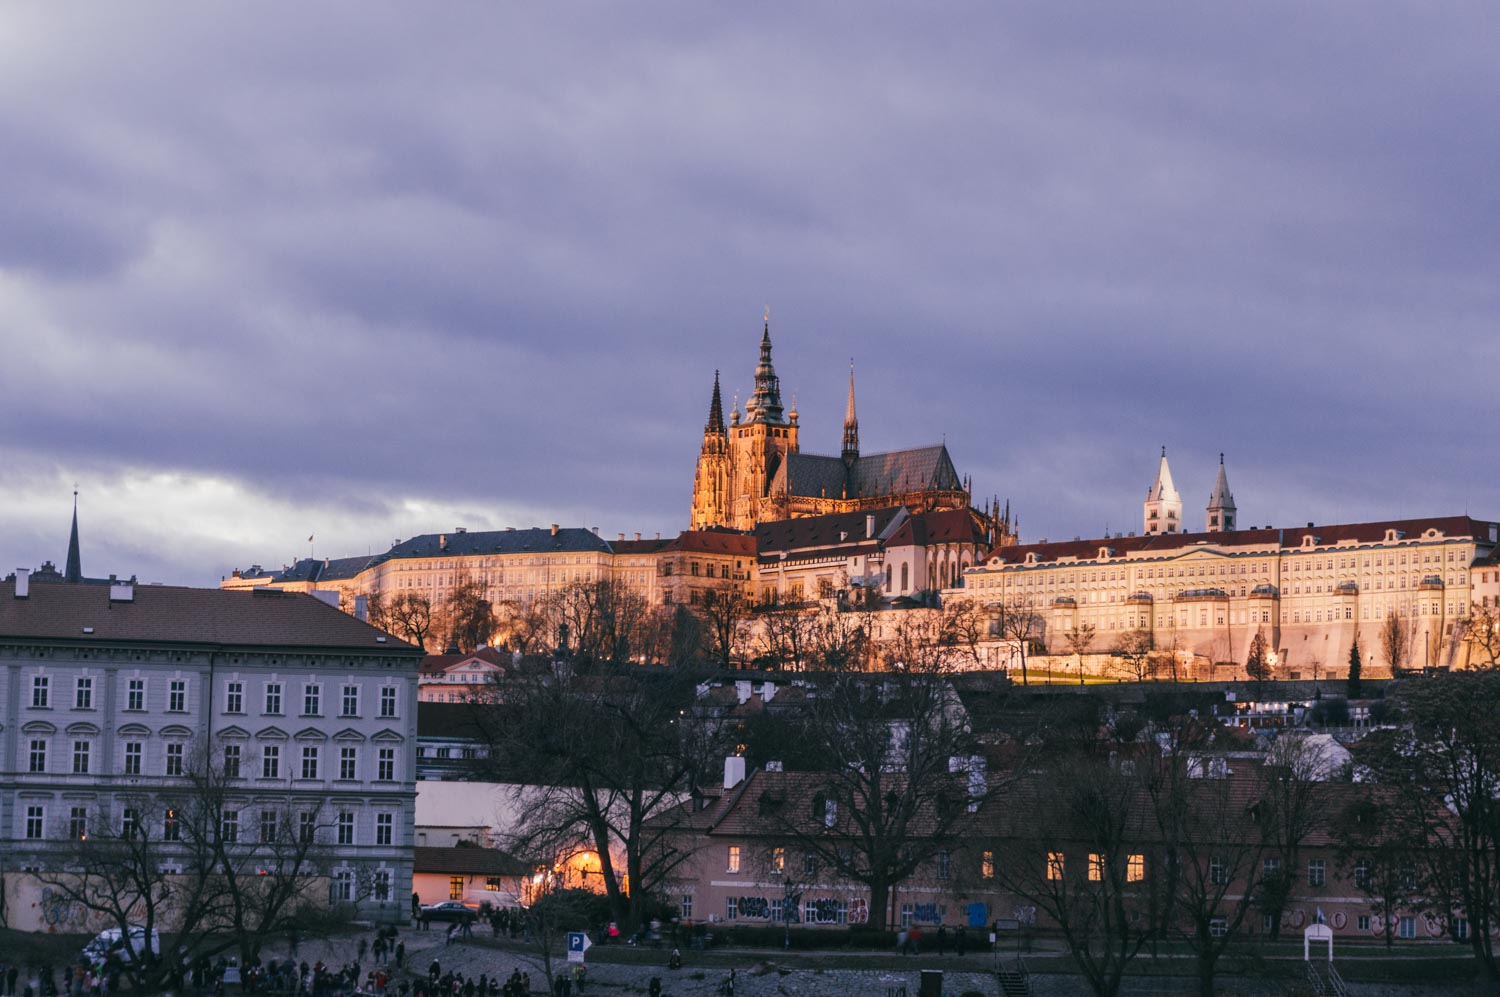 Christmas in Europe – Prague day 1, part 2